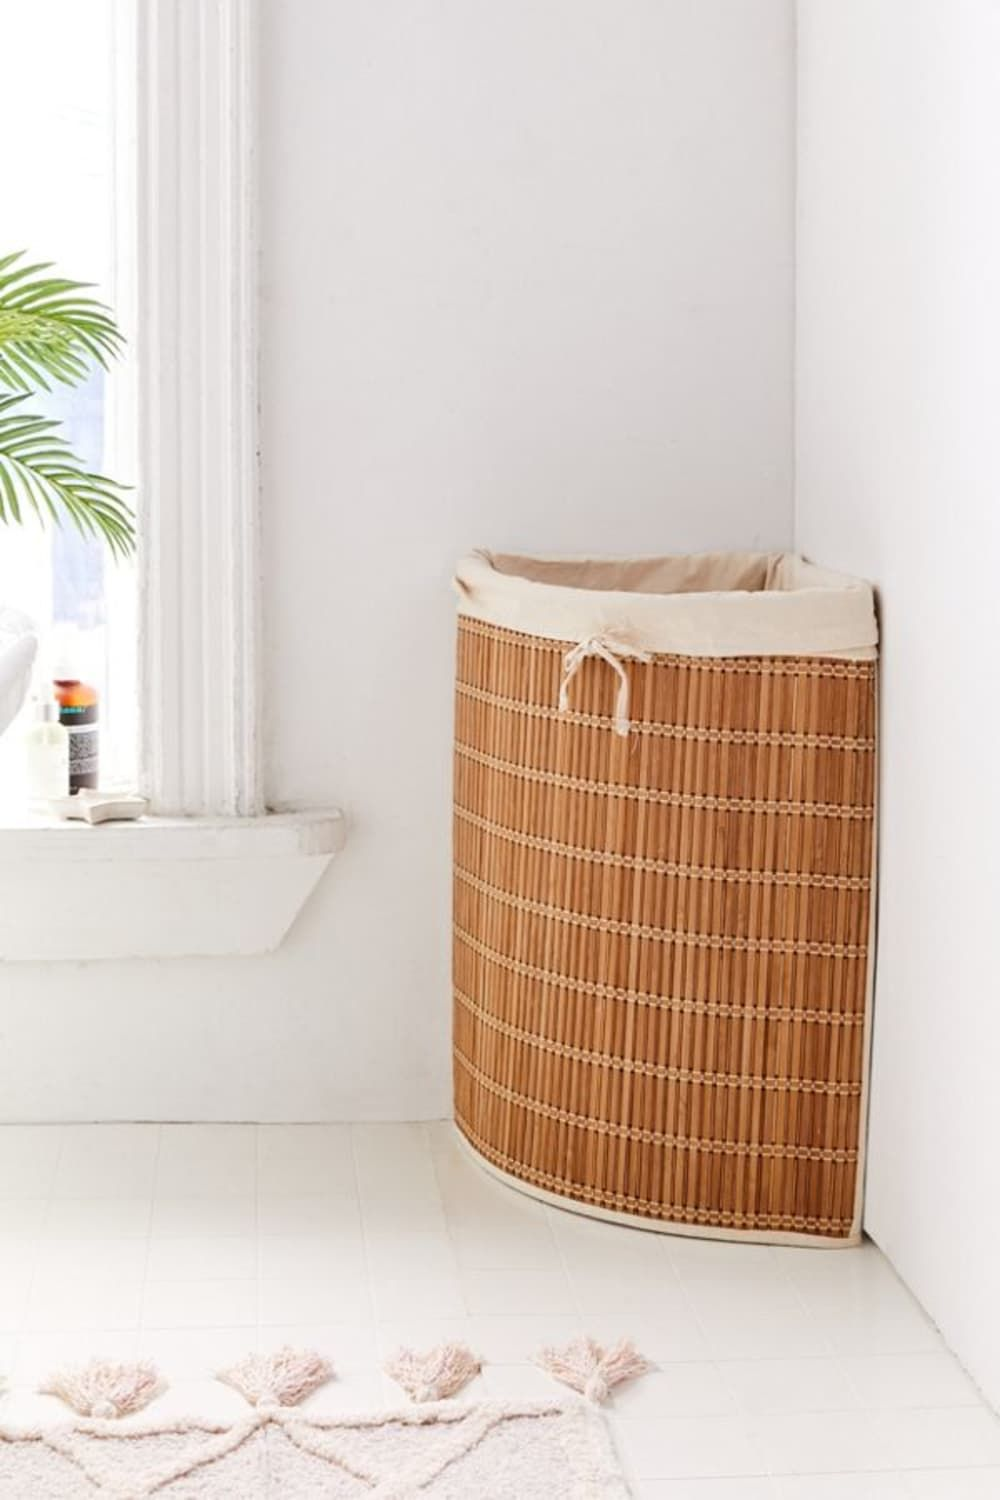 7 Laundry Hampers That Make The Most Of Your Small Space Laundry